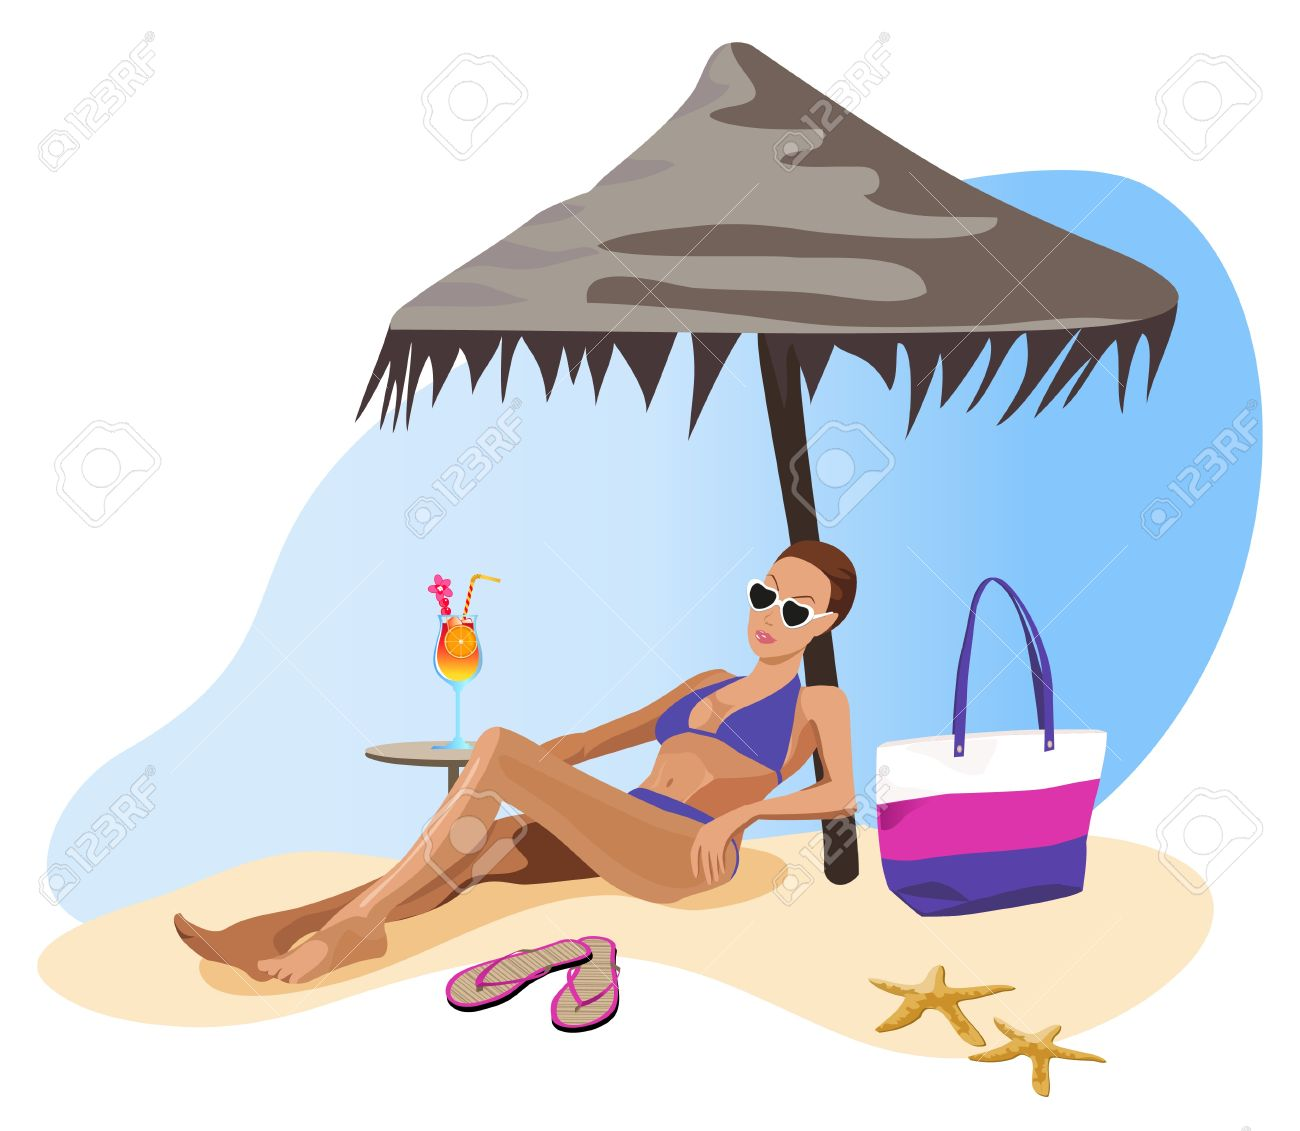 Chilling clipart #10